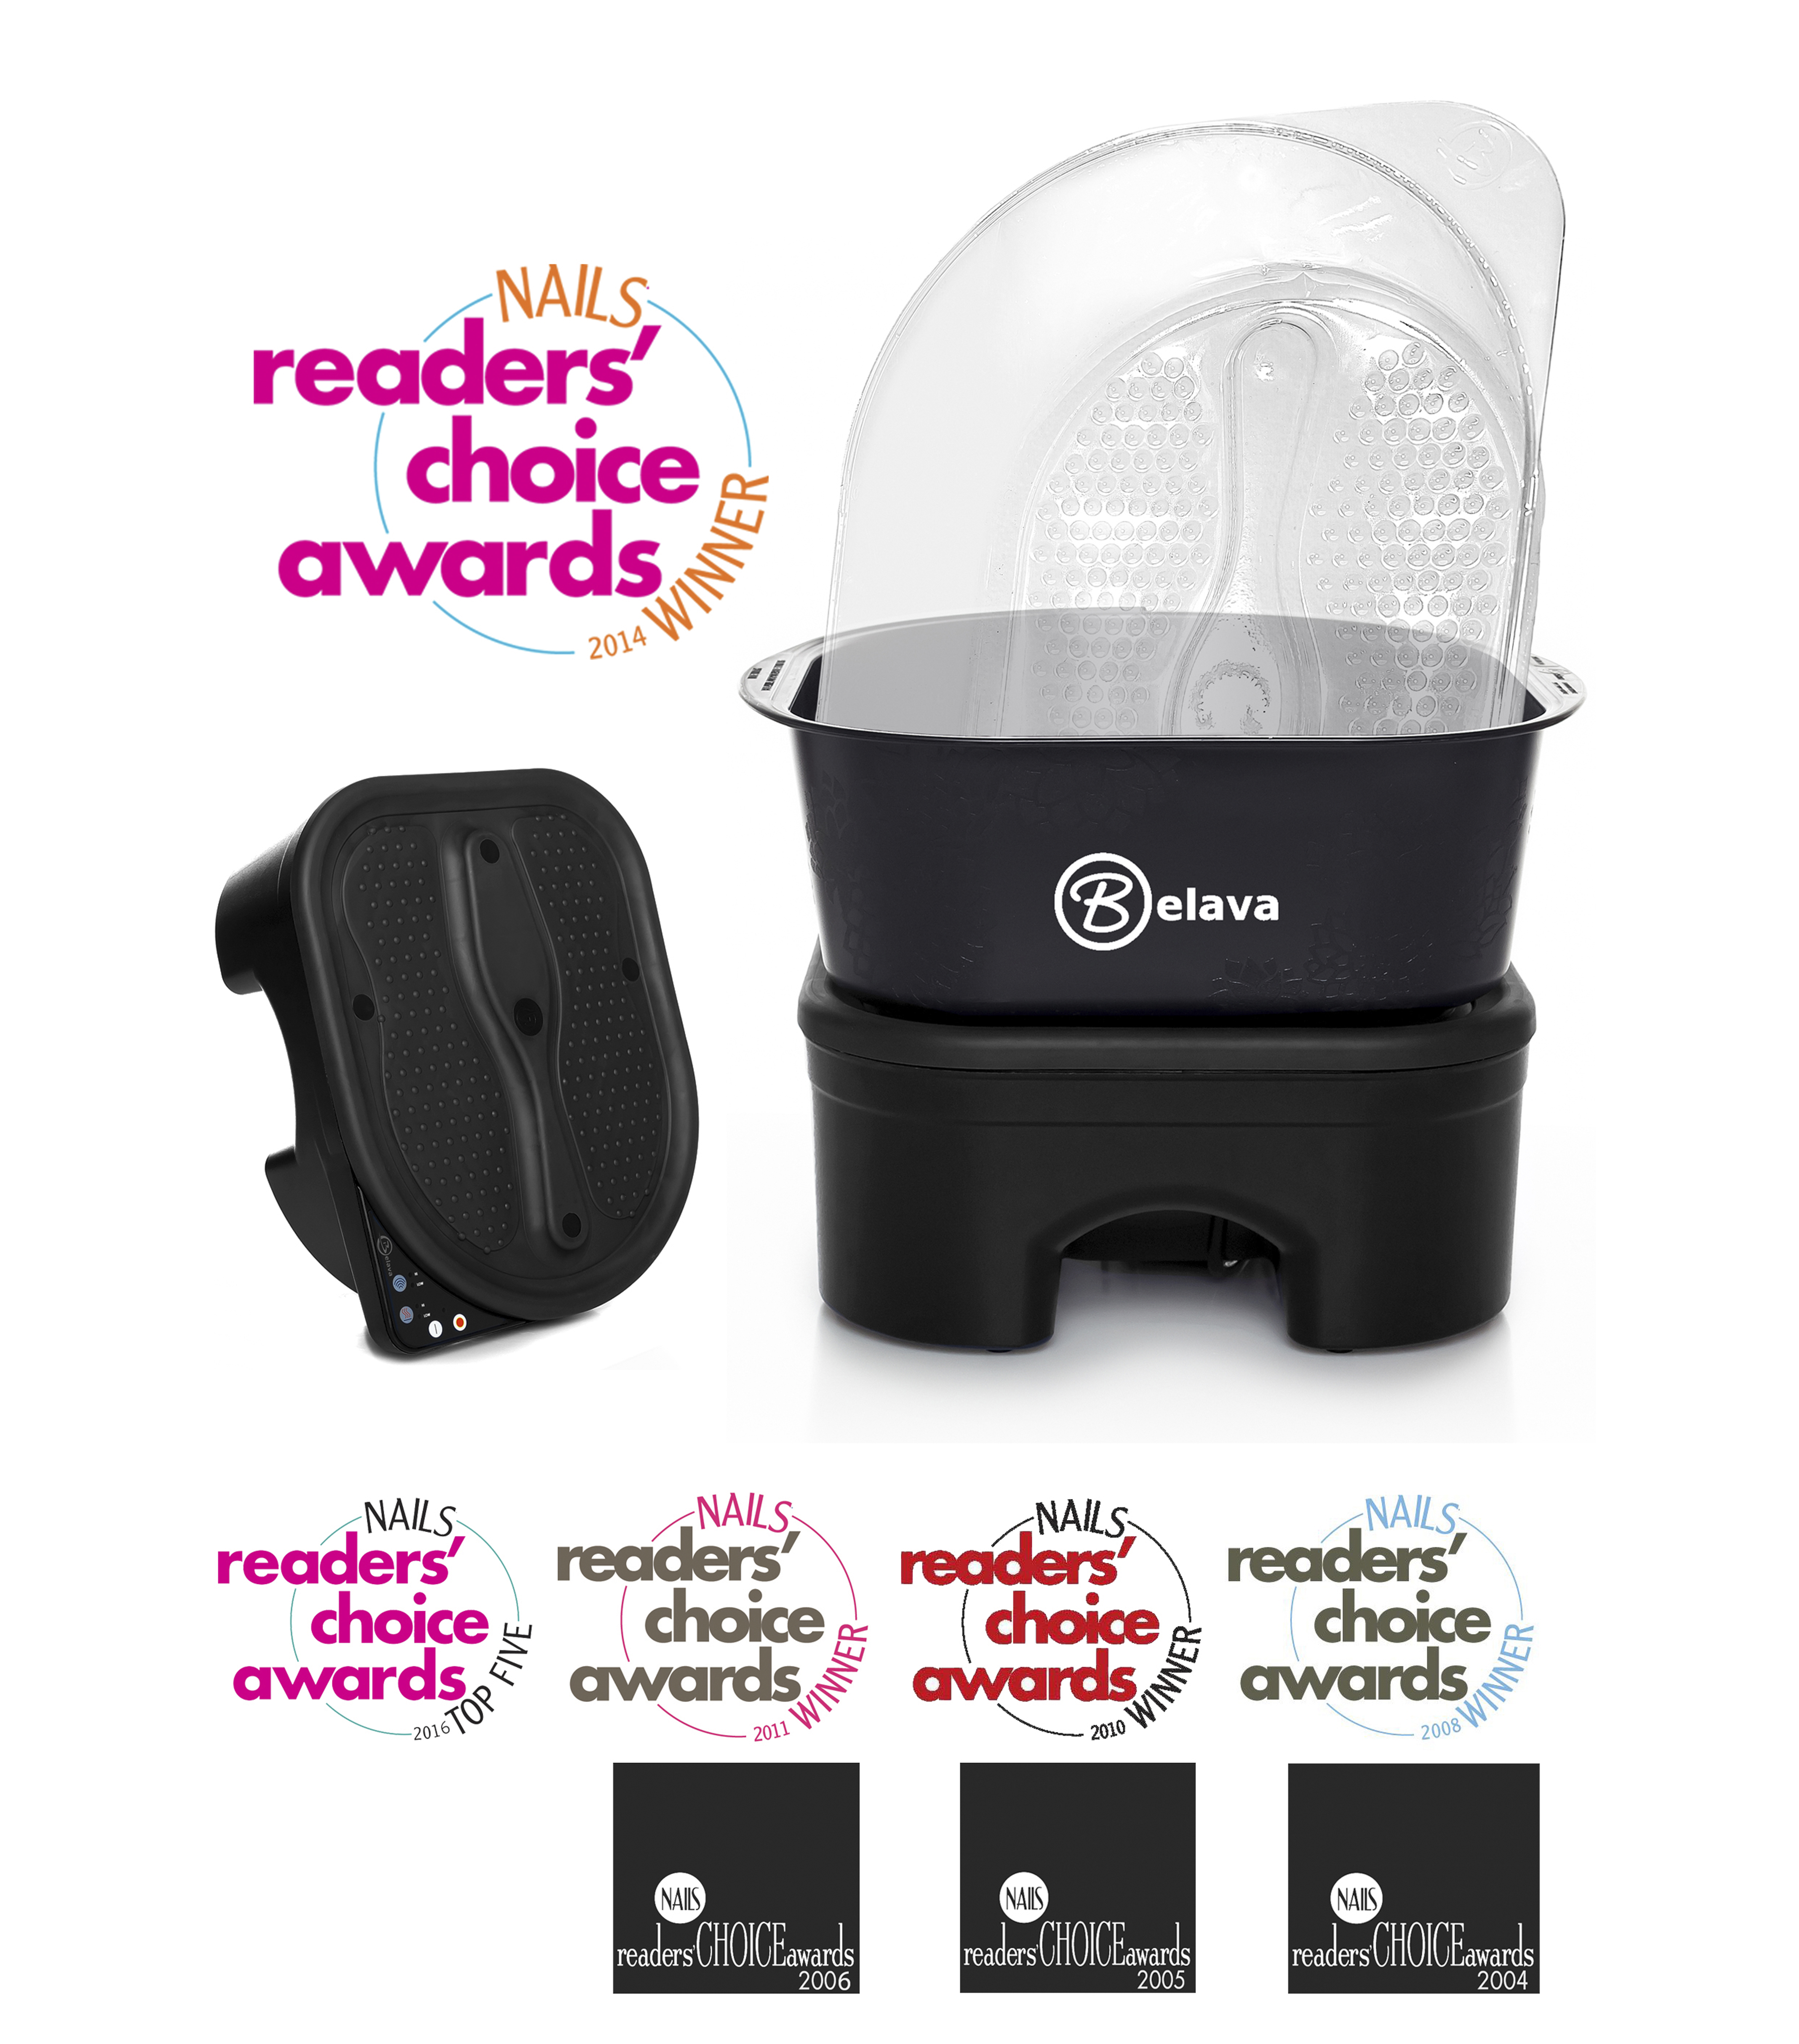 pro-foot-massager-in-black-nails-readers-choice-awards-by-belava.jpg